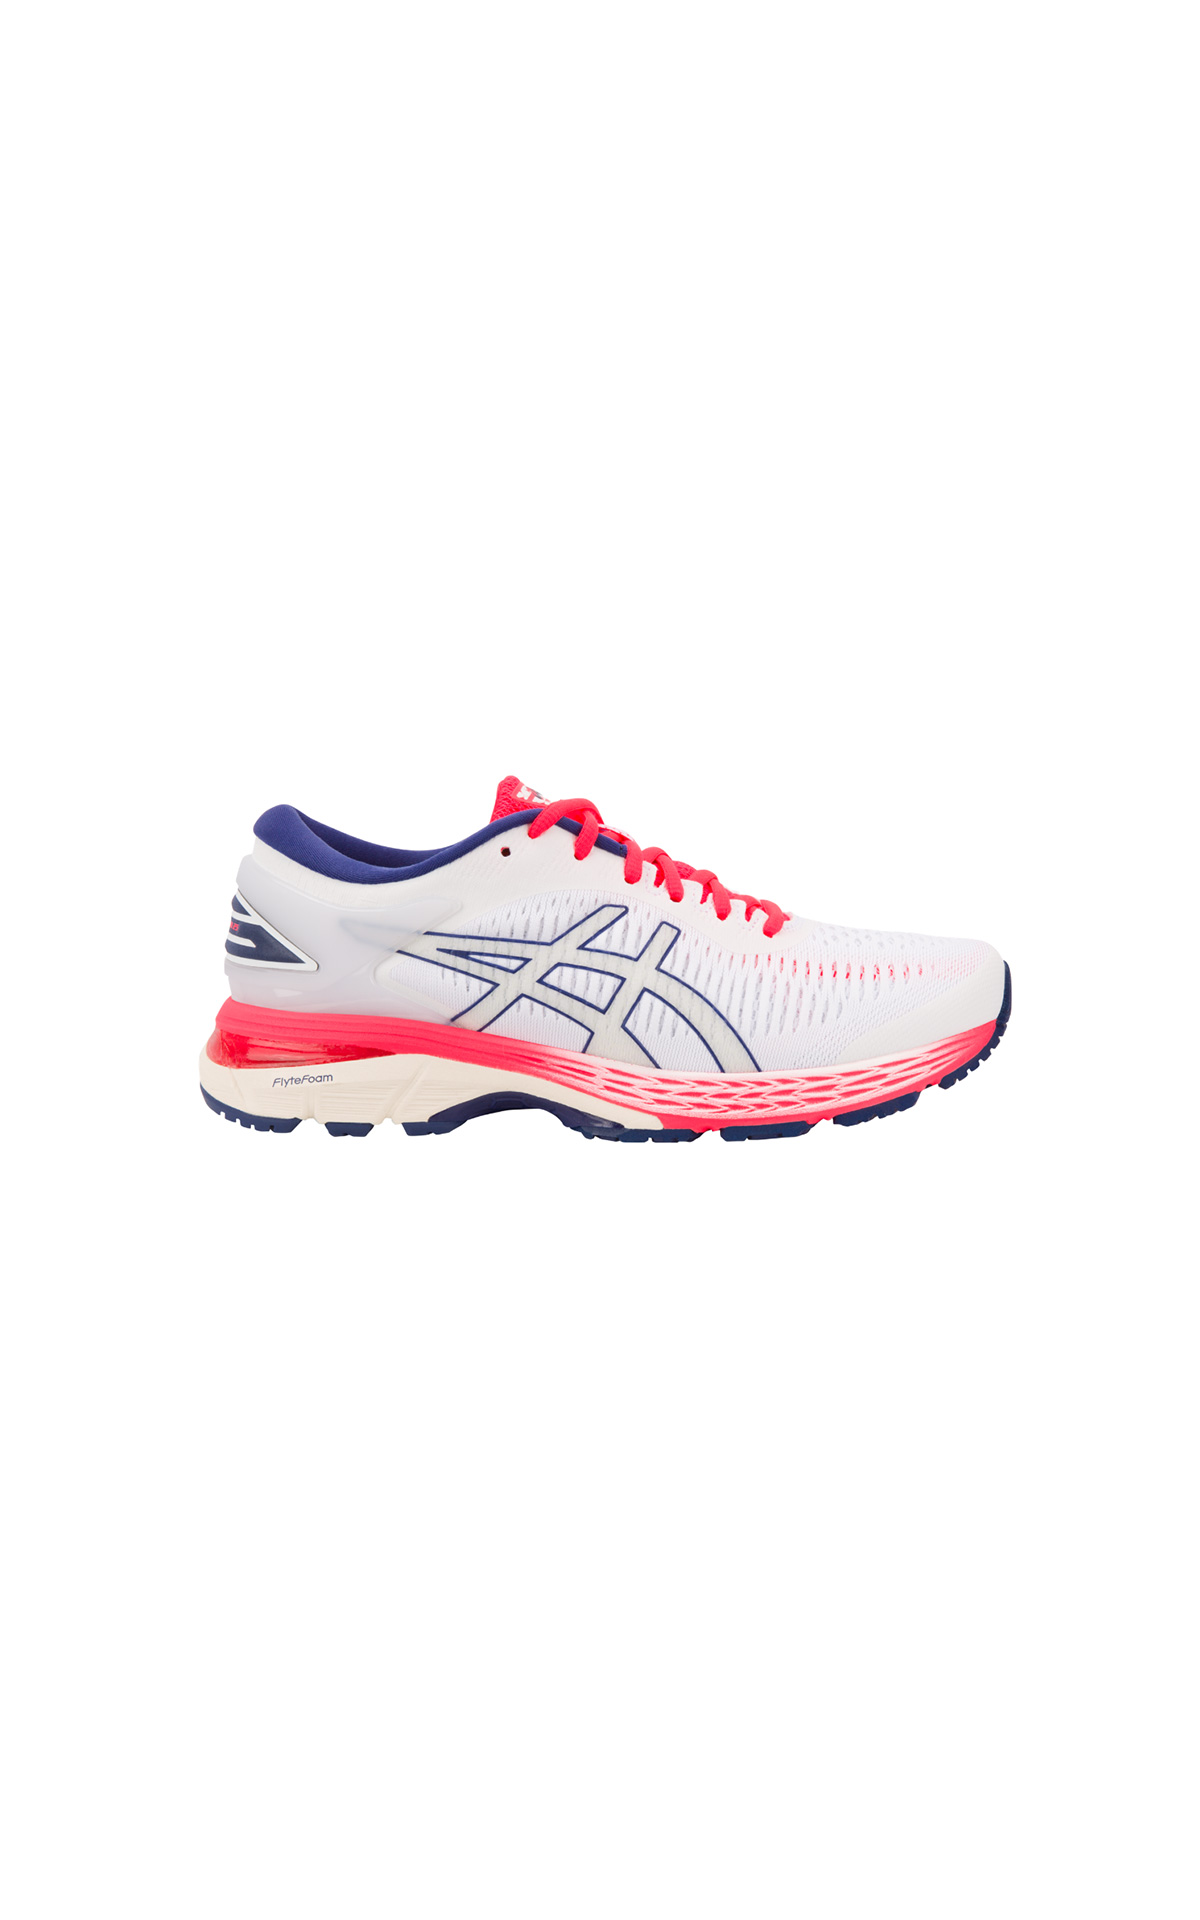 ASICS Gel-Kayano 25 at The Bicester Village Shopping Collection